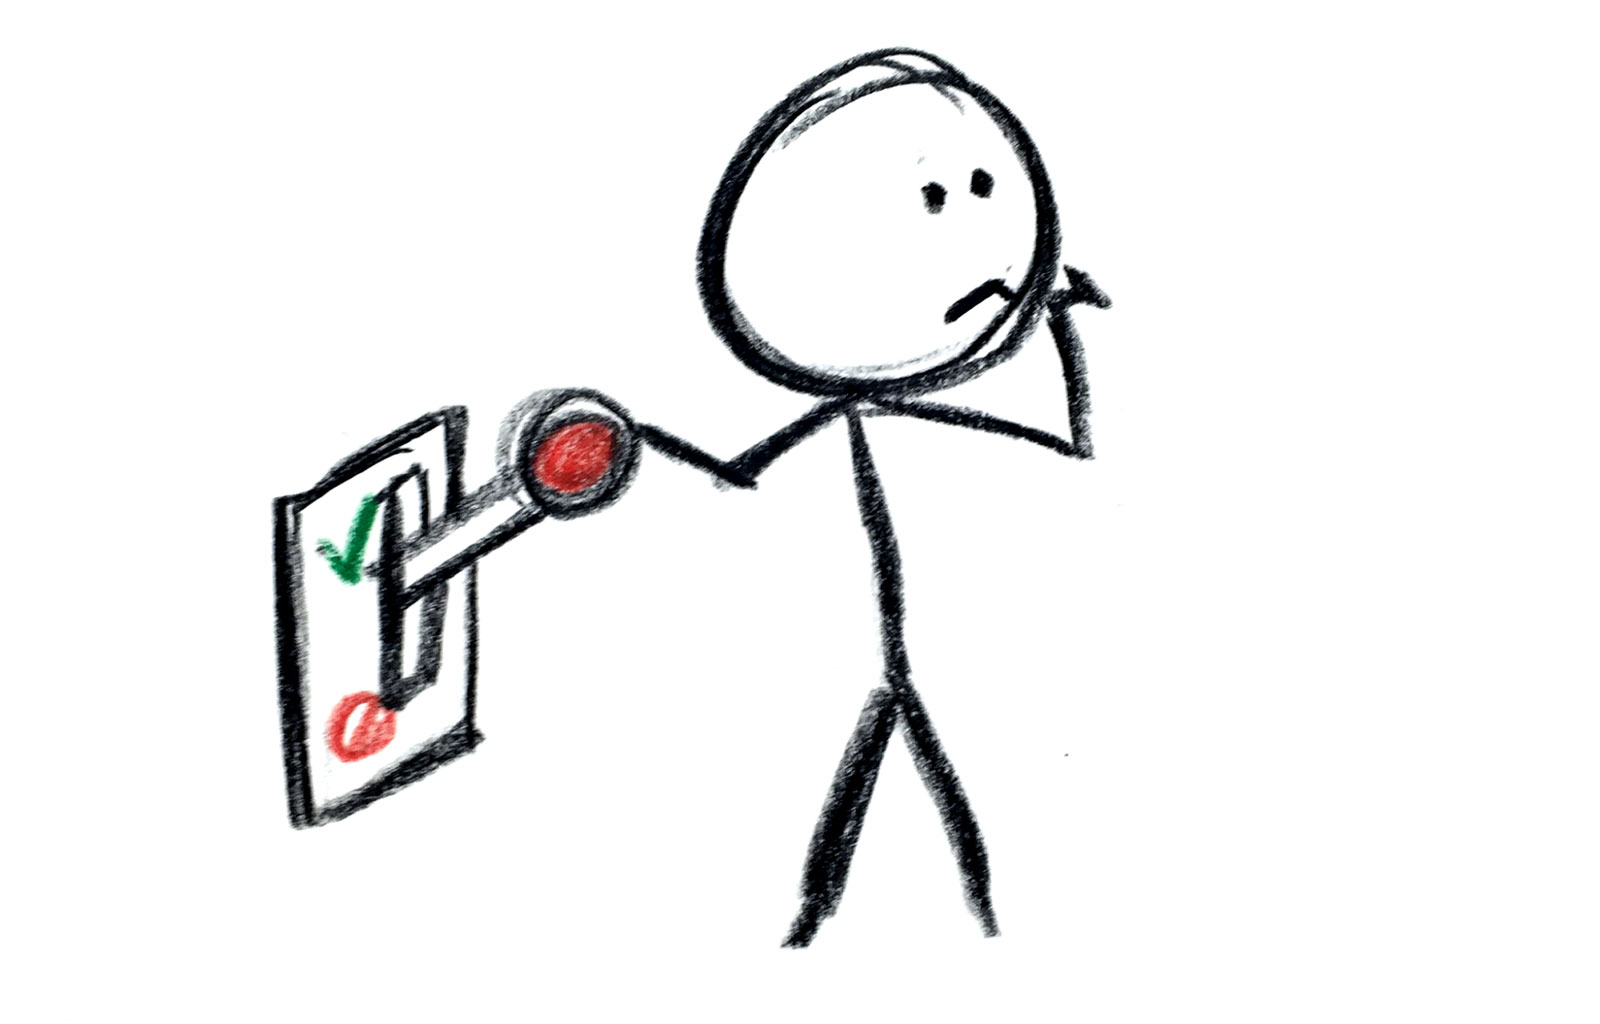 Stick figure holding onto a yes/no switch.